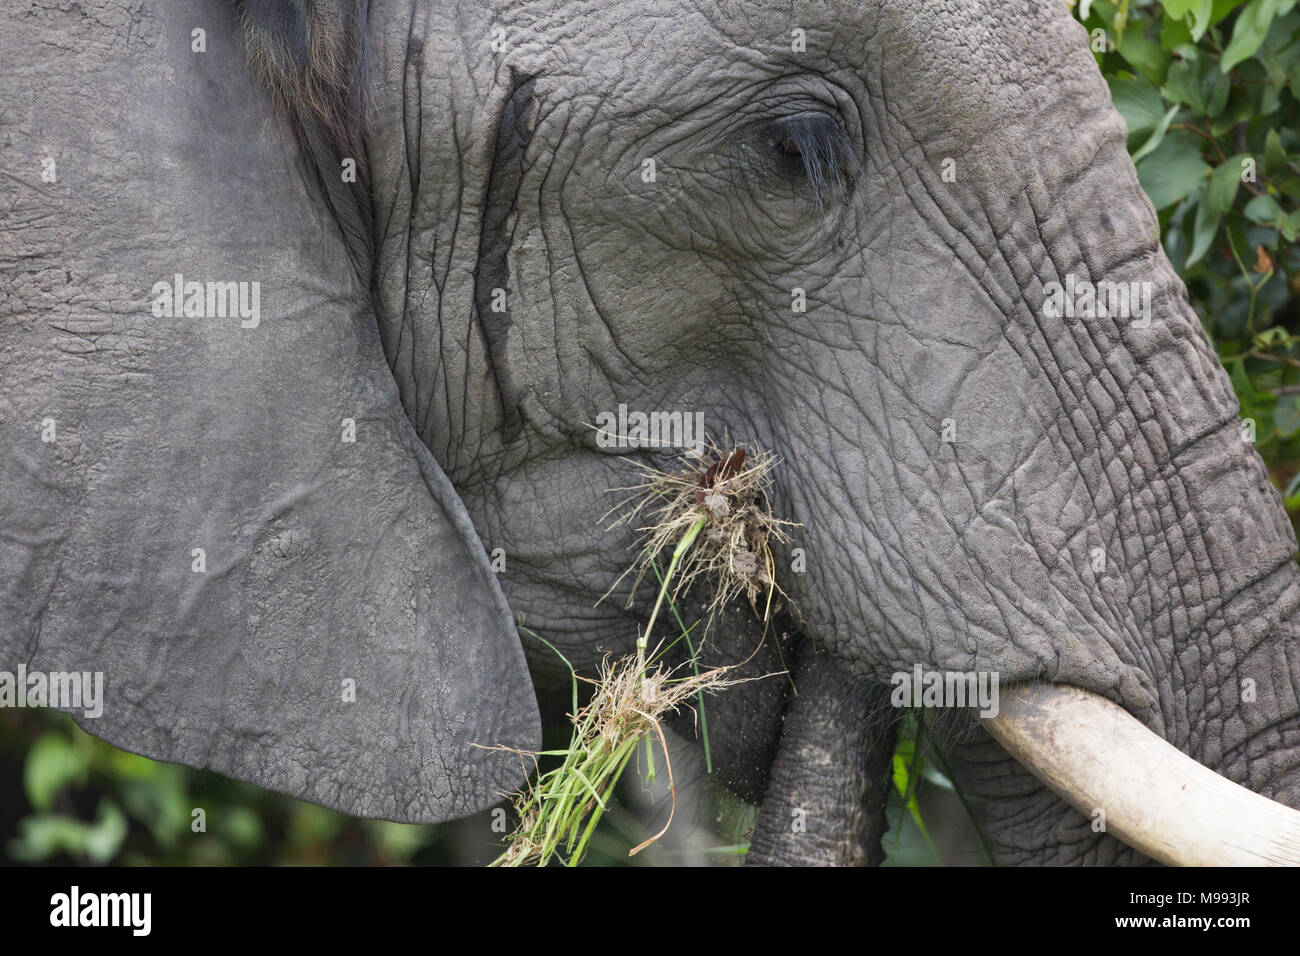 African Elephant (Loxodonta africana). Cow elephant with mouth full of vegetation thrust into the mouth. Temporal gland opening between ear and eye. - Stock Image